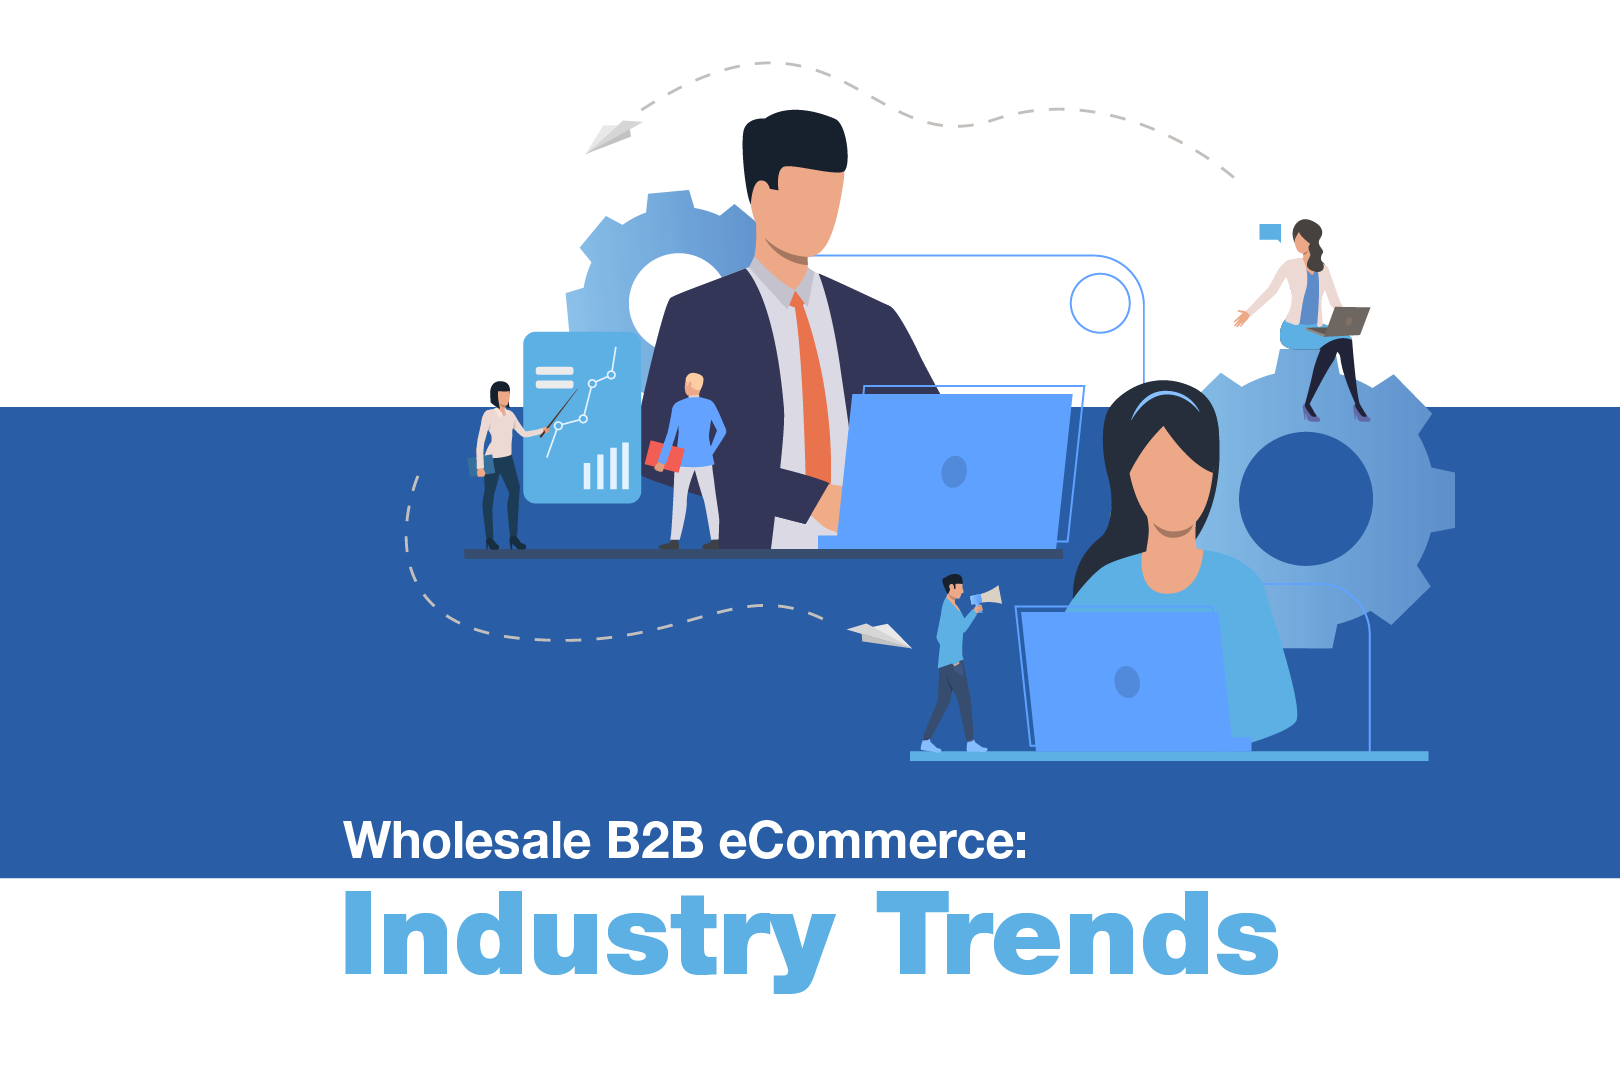 Cover of the Wholesale B2B eCommerce Industry Trends